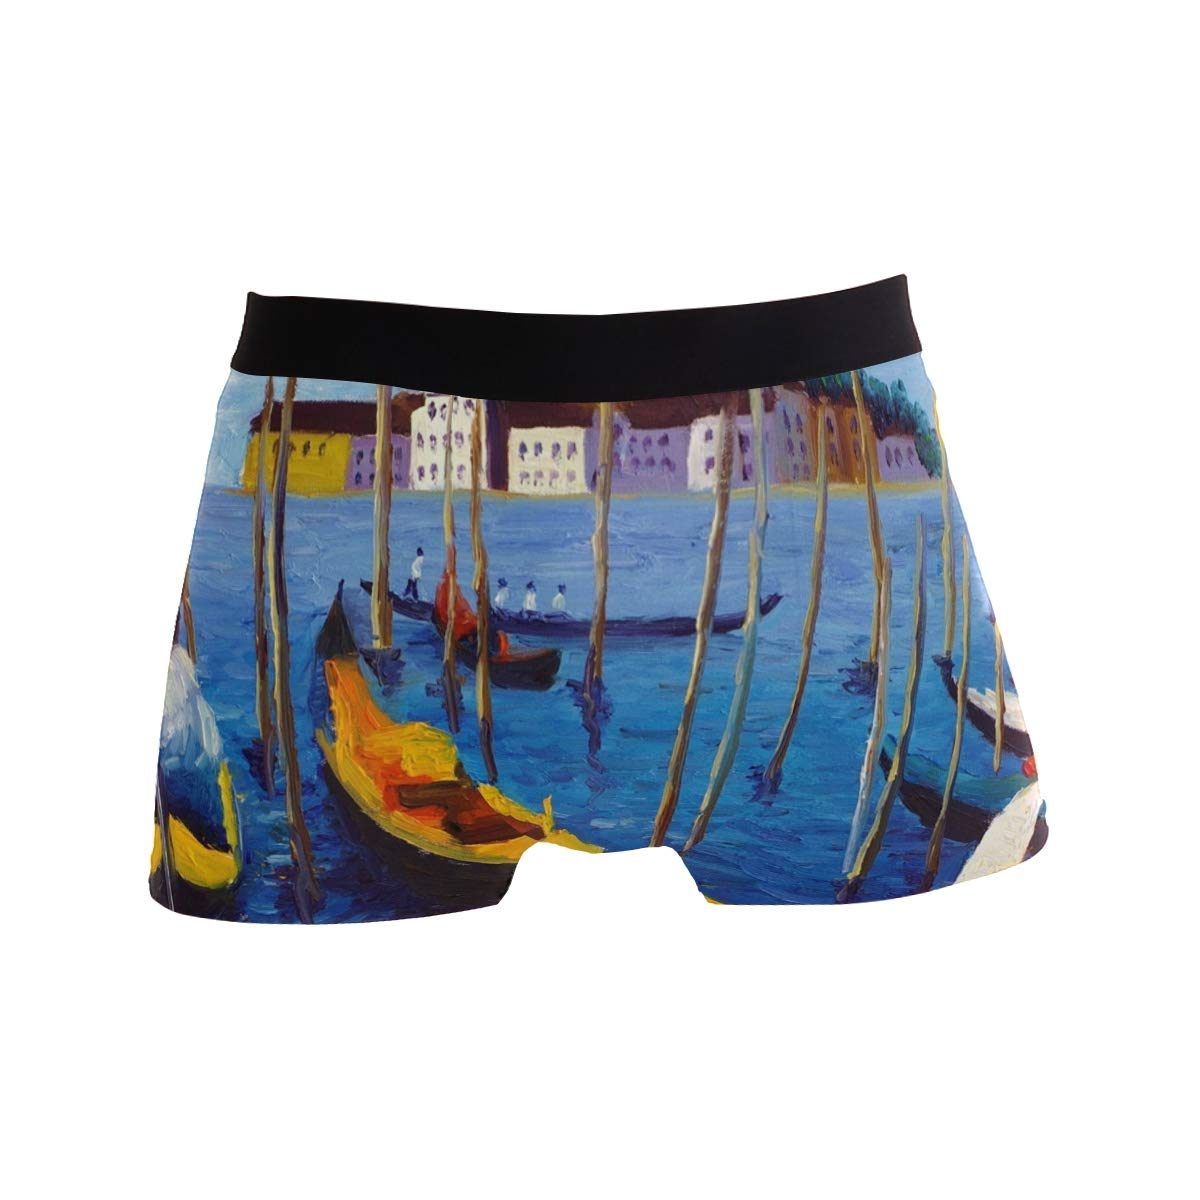 KUWT Art Painting Venice Italy Mens Boxer Briefs Underwear Comfortable Underpants for Mens Boys Youth